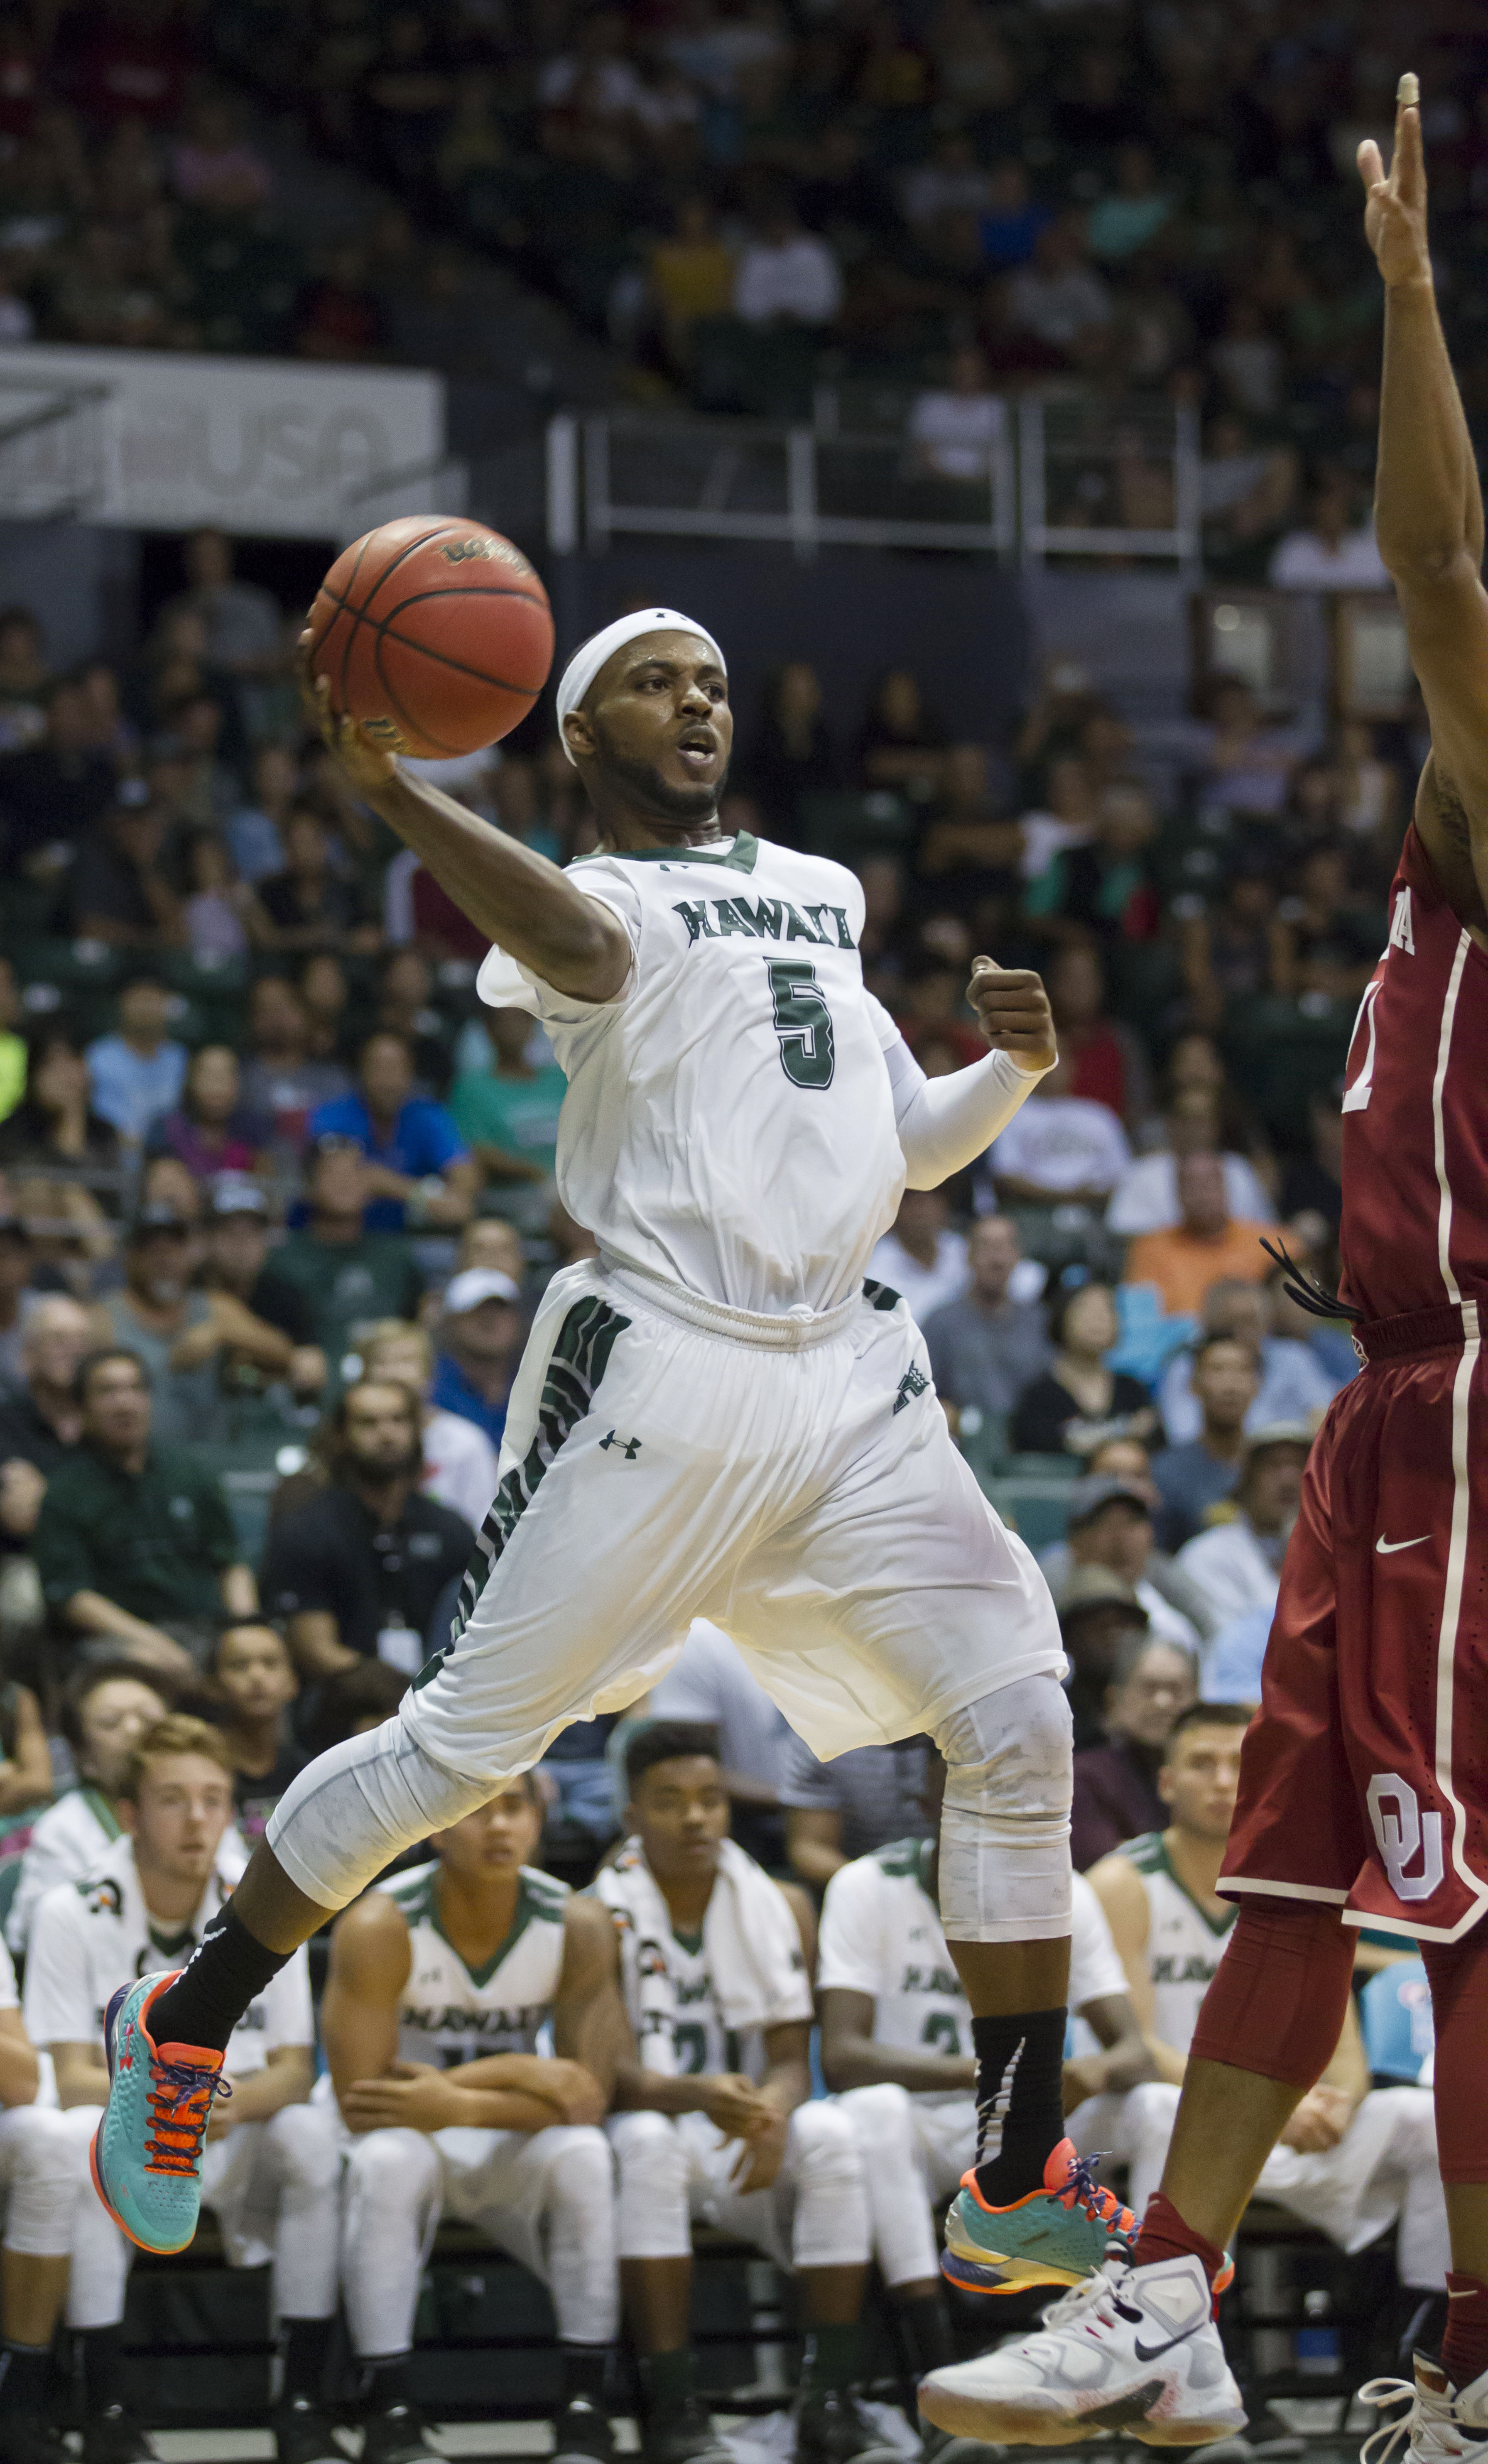 Hawaii guard Roderick Bobbitt drives the baseline then passes off to a teammate as  Oklahoma guard Isaiah Cousins, right, defends during the second half of an NCAA college basketball game at the Diamond Head Classic, Wednesday, Dec. 23, 2015, in Honolulu.